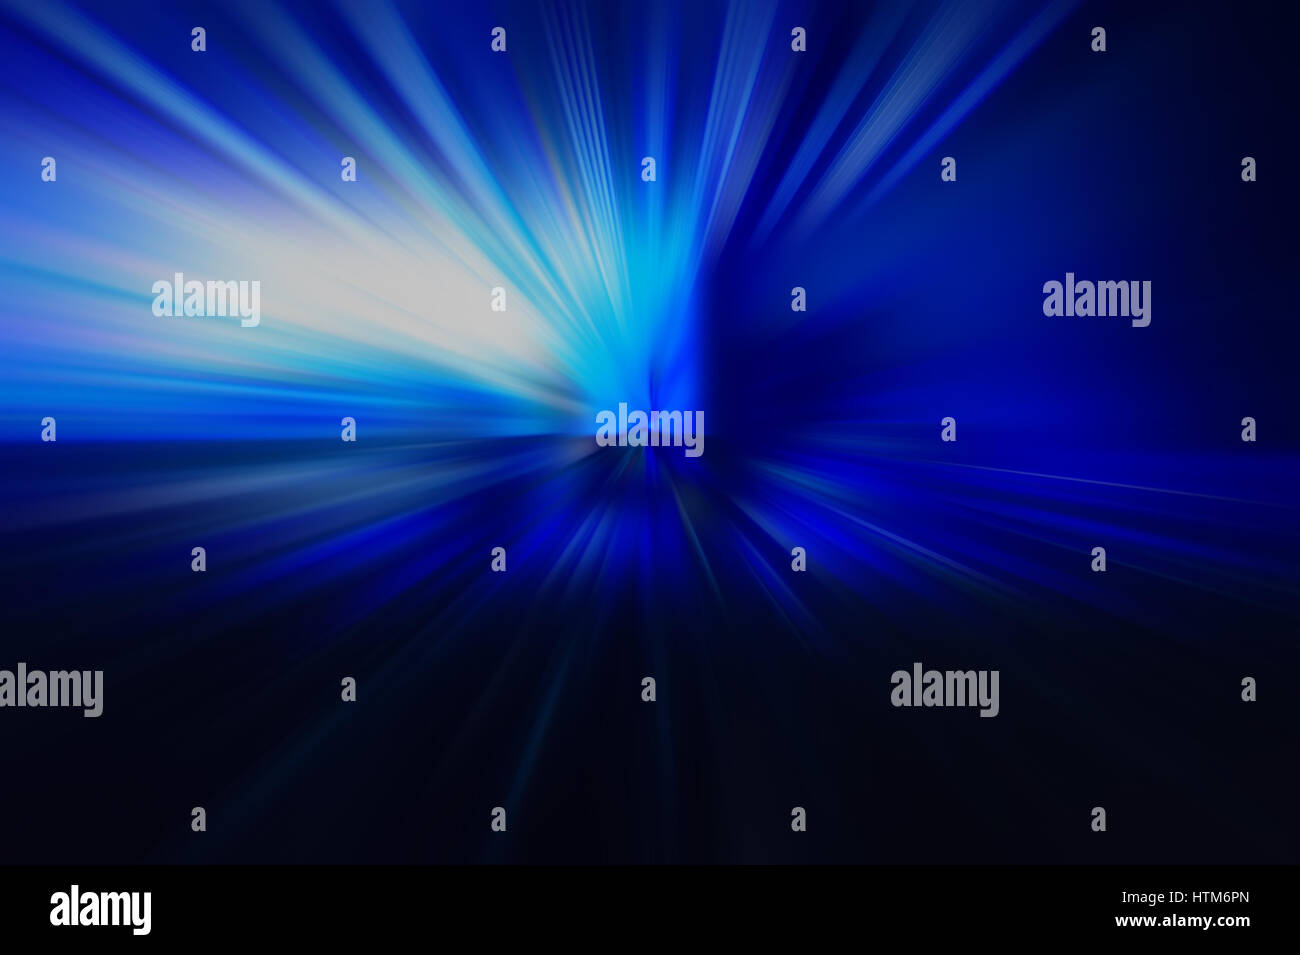 Radial colored rays, abstract blurred background - Stock Image